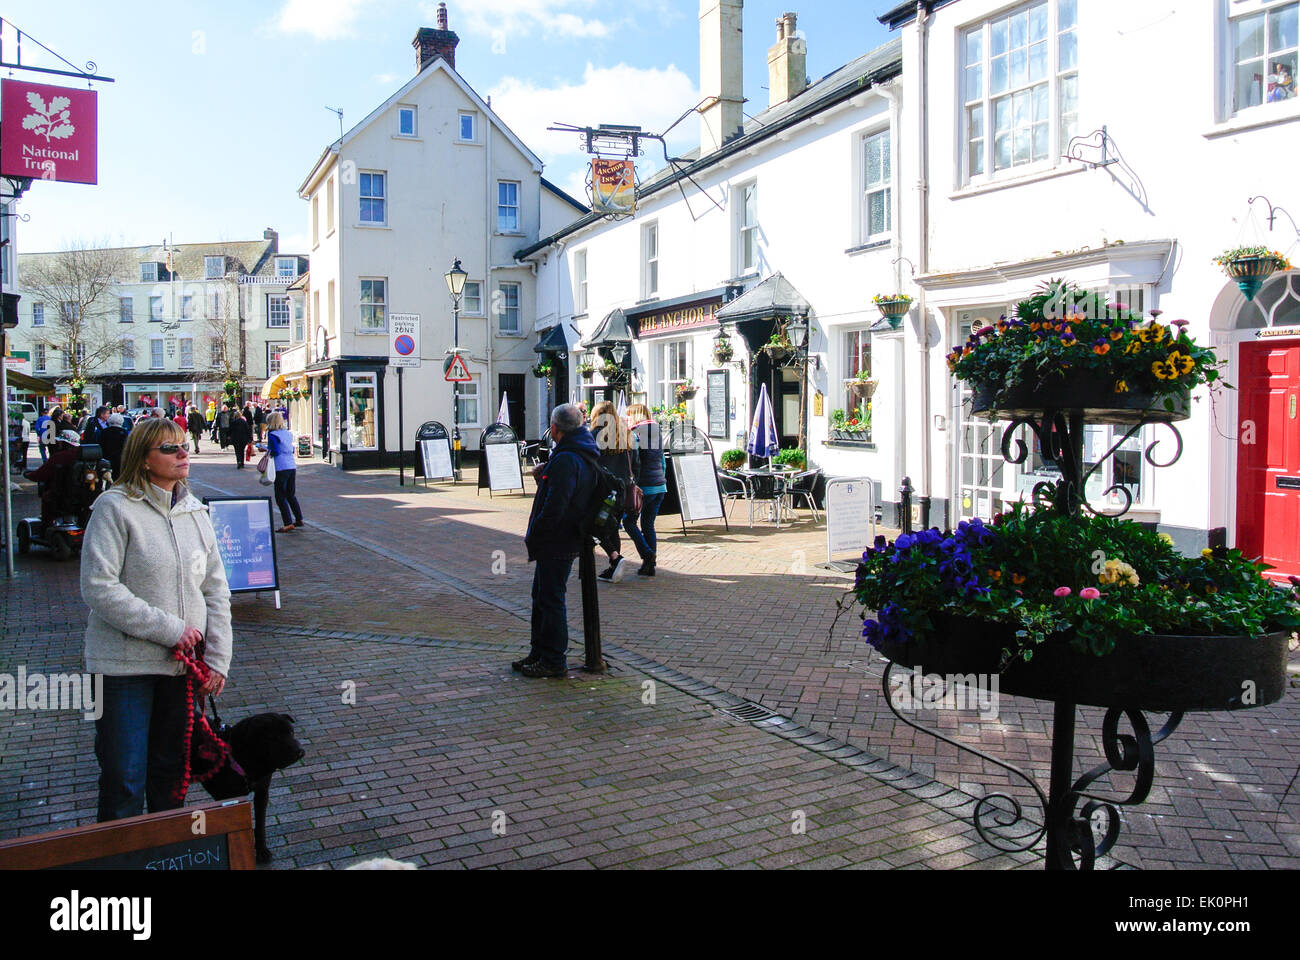 951c31b9cb0 Sidmouth town centre and shops Stock Photo  80537661 - Alamy